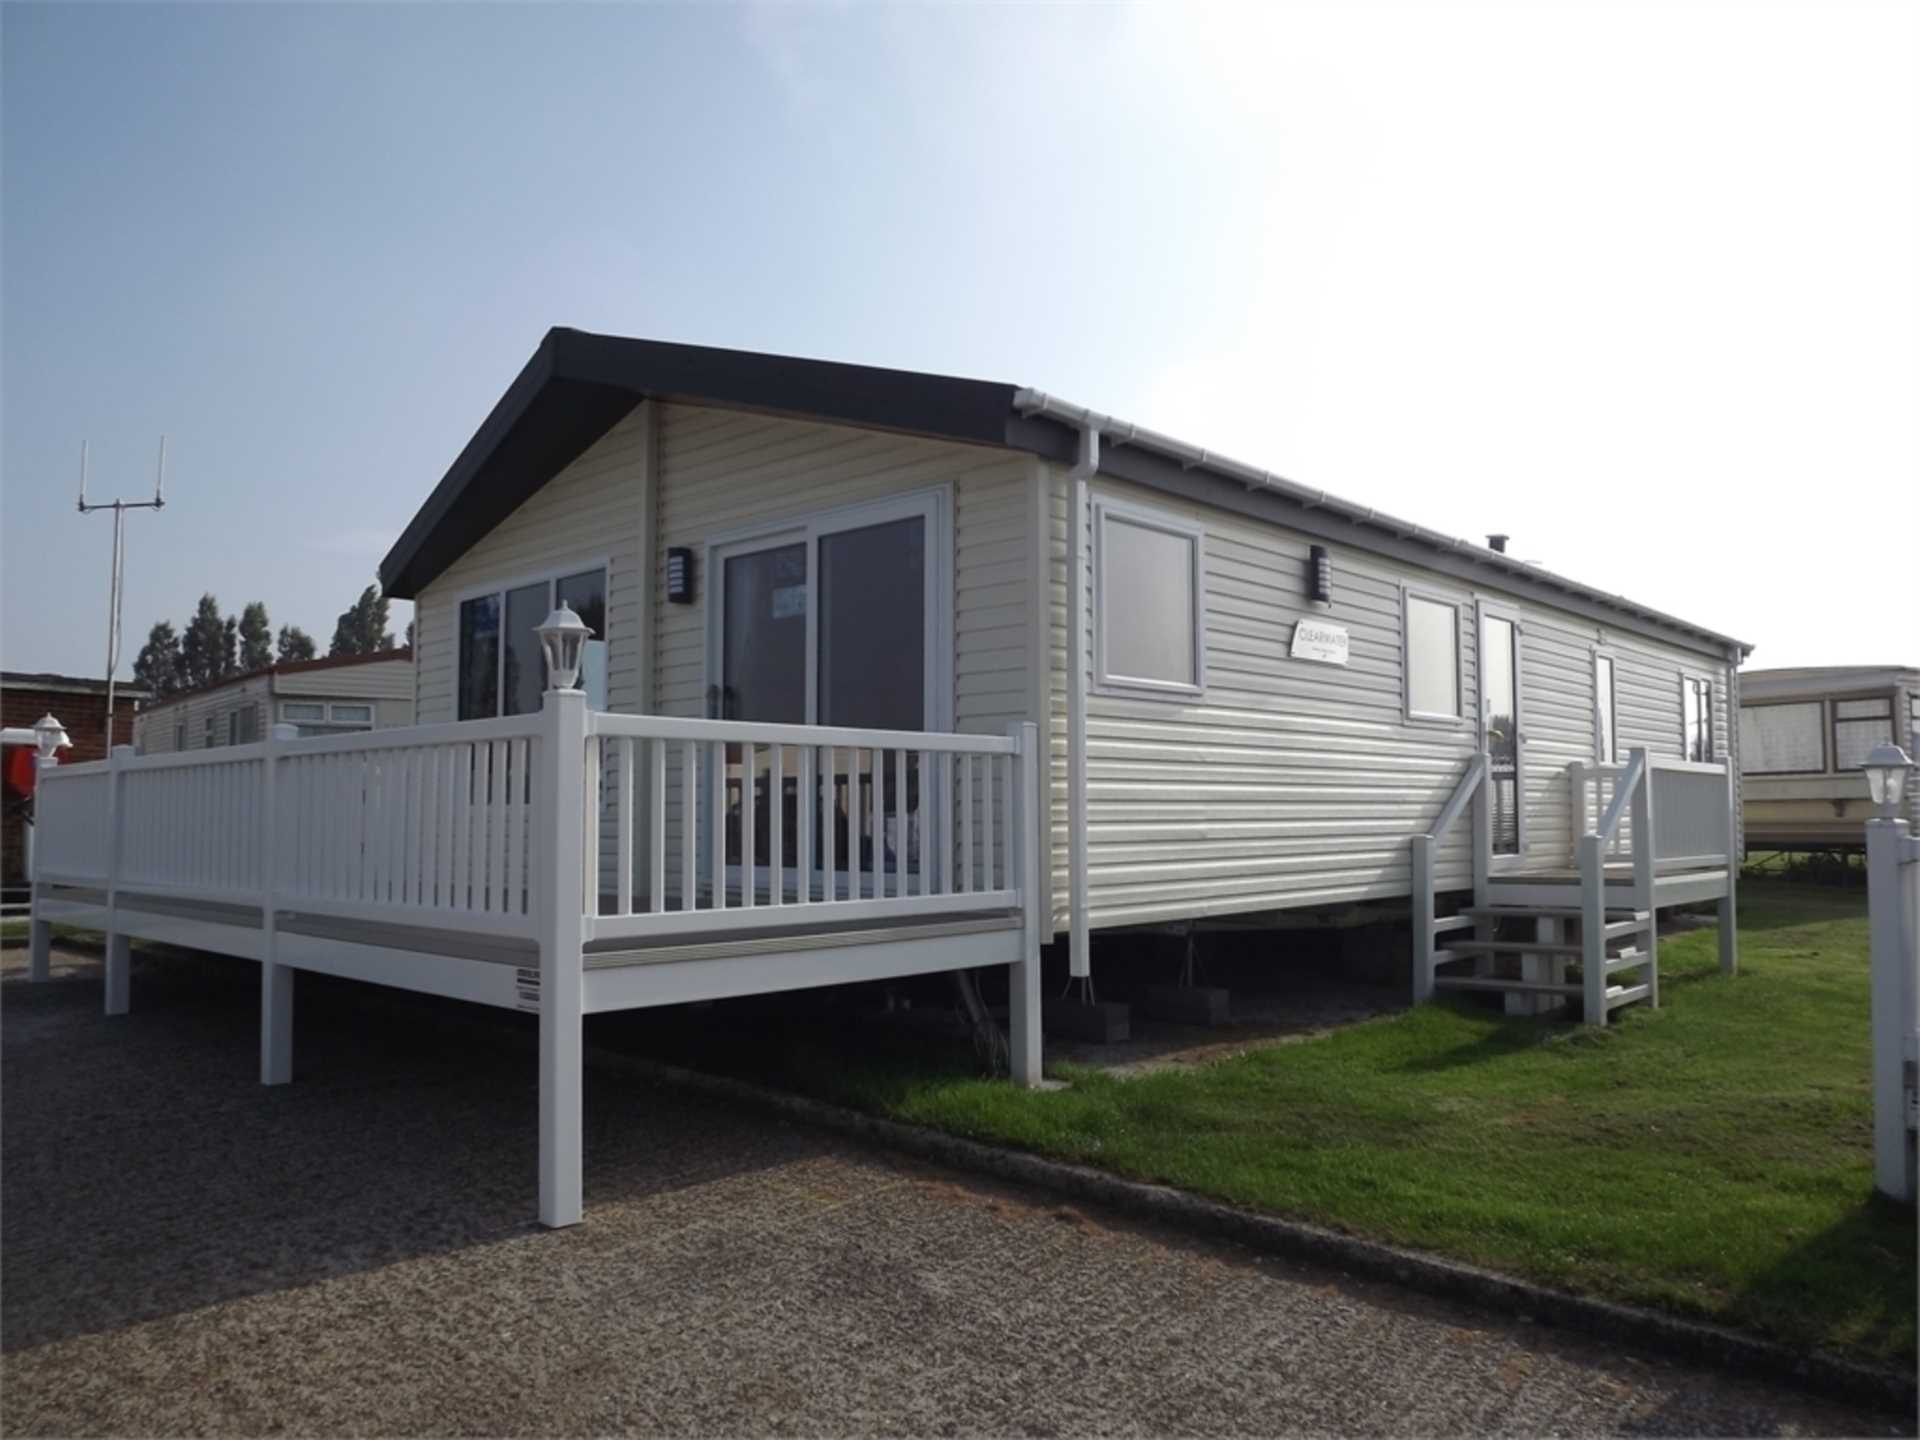 2 Bedroom Park Home For Sale The Lodge Shurland Dale Holiday Park Warden Road Sheerness